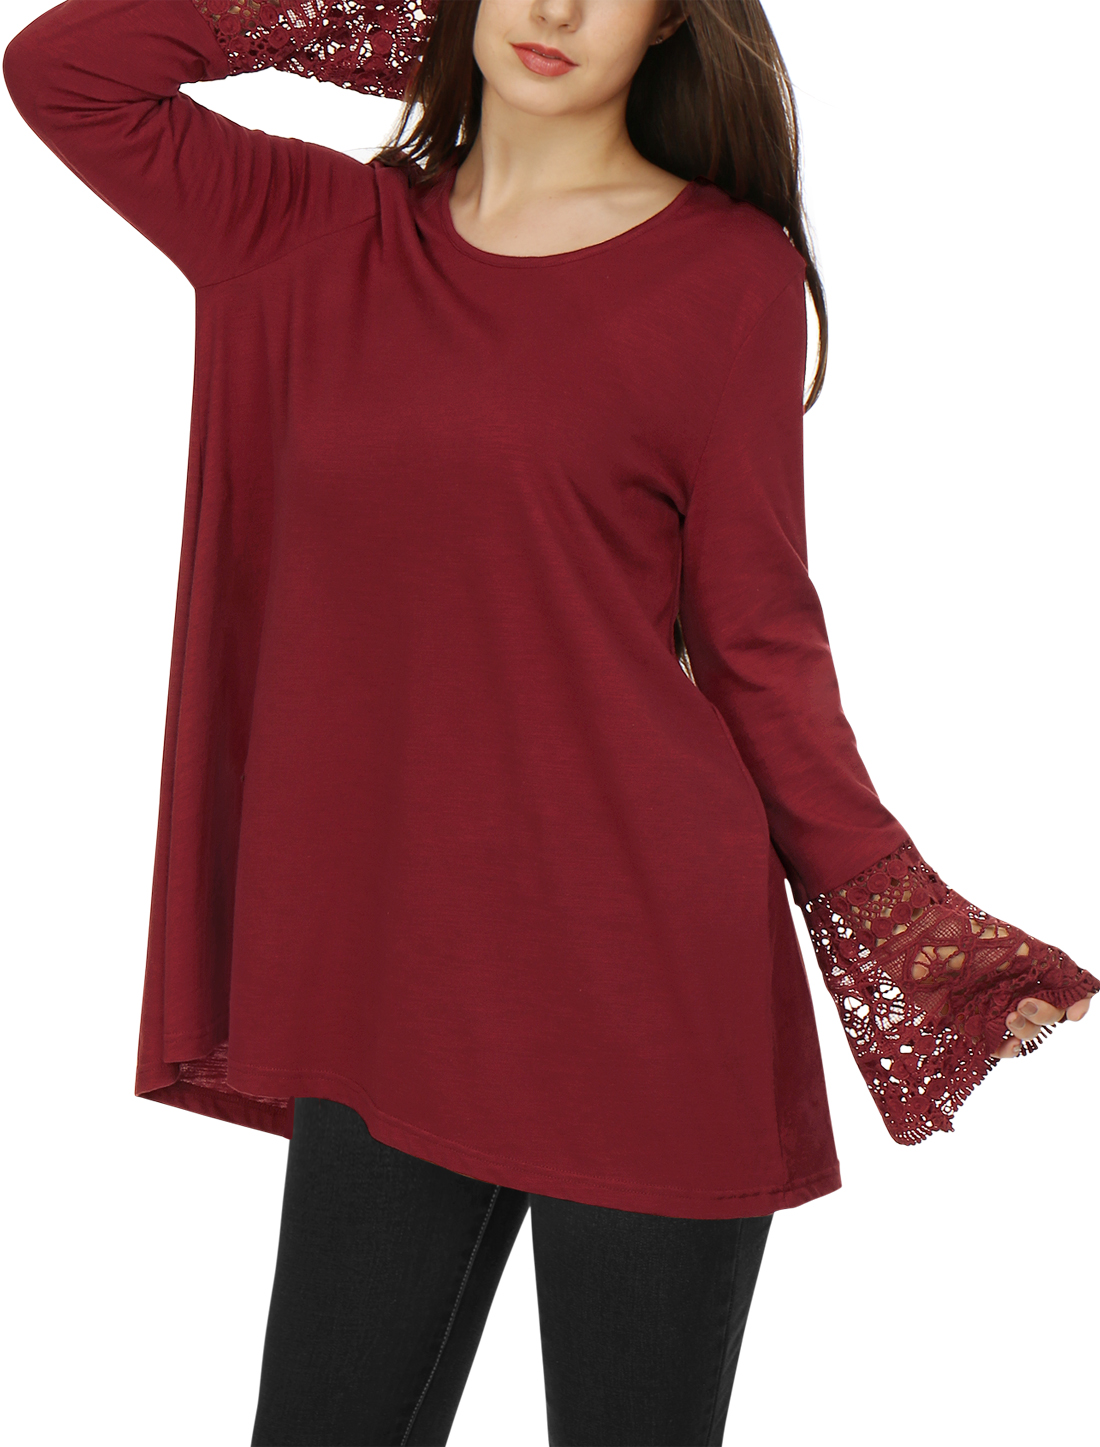 Women Crochet Panel Bell Sleeves Loose Tunic Top Red M